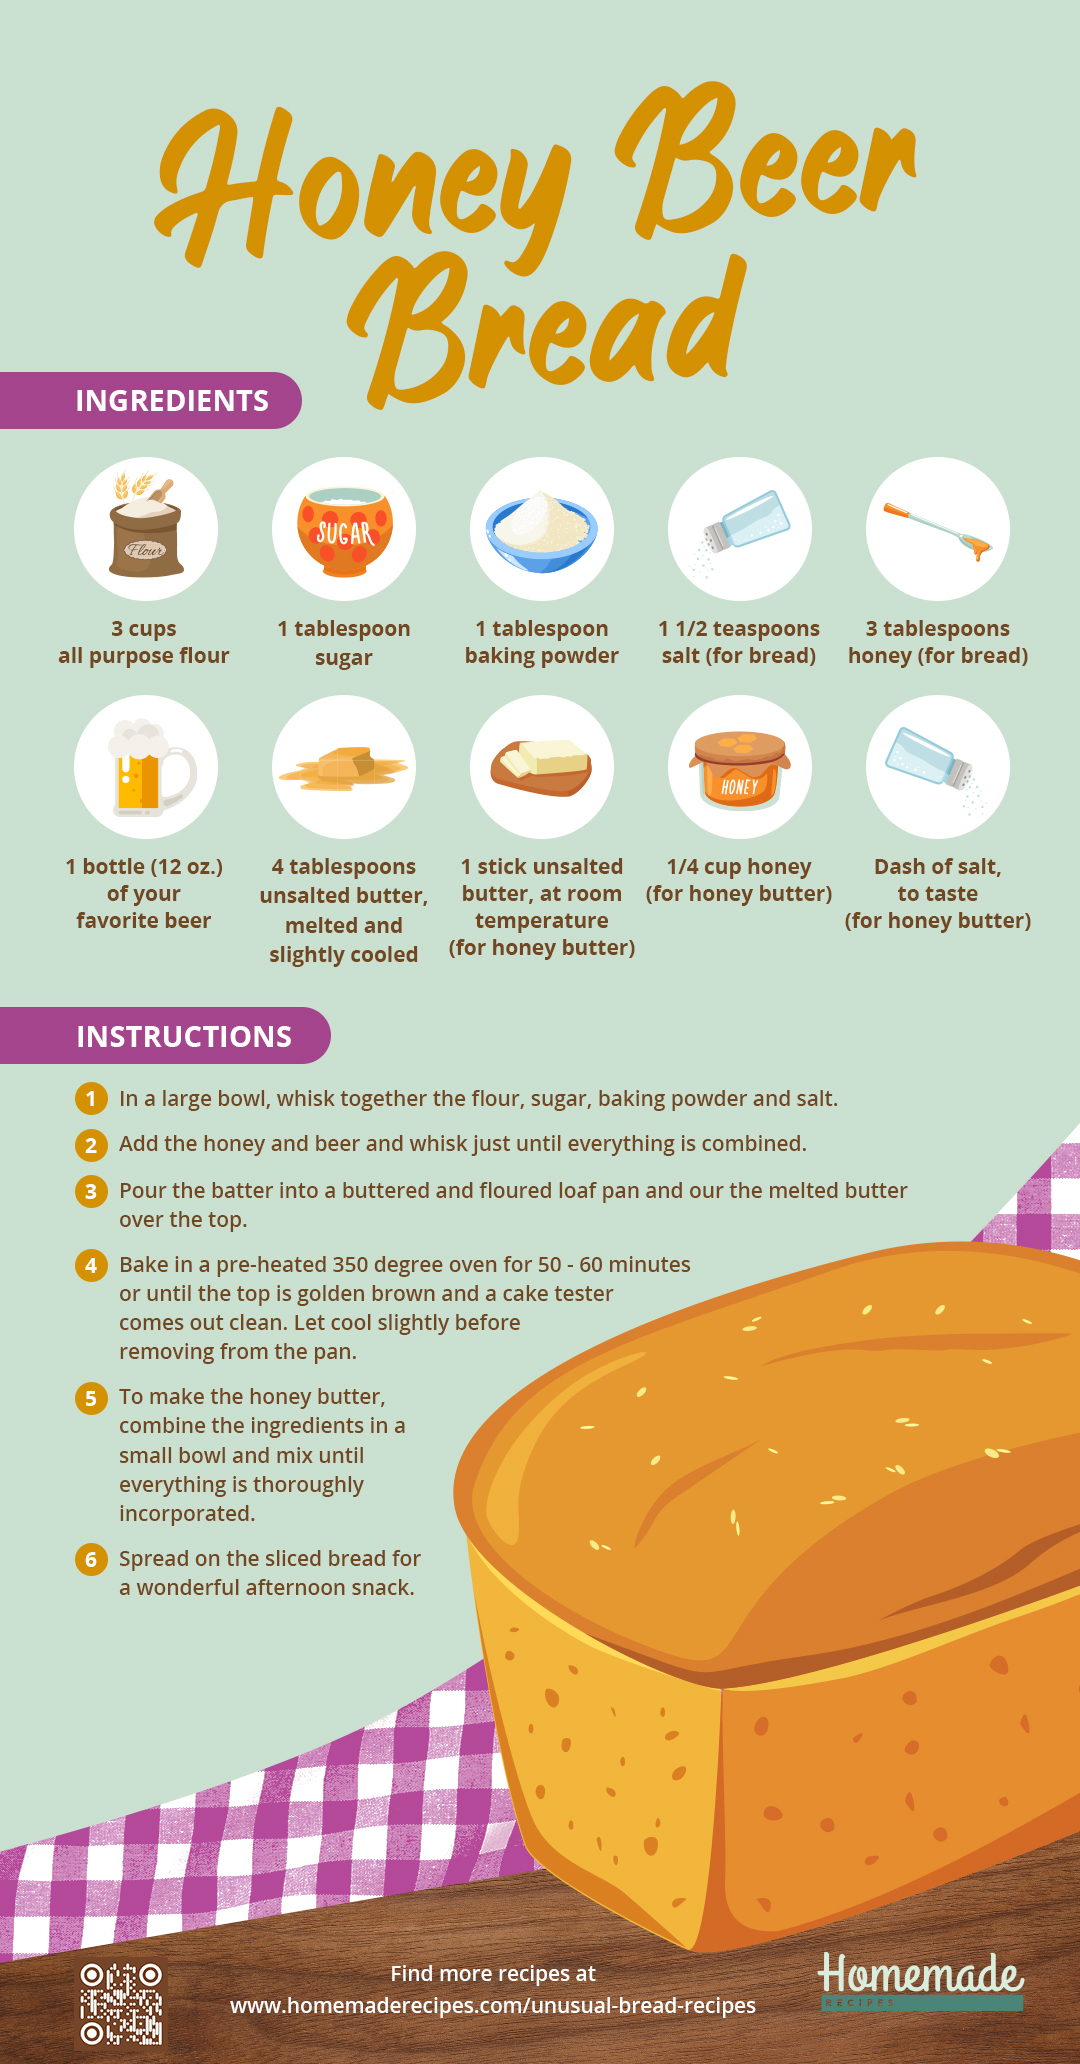 Honey Beer Bread | Unusual Bread Recipes You Have To Try [INFOGRAPHIC]